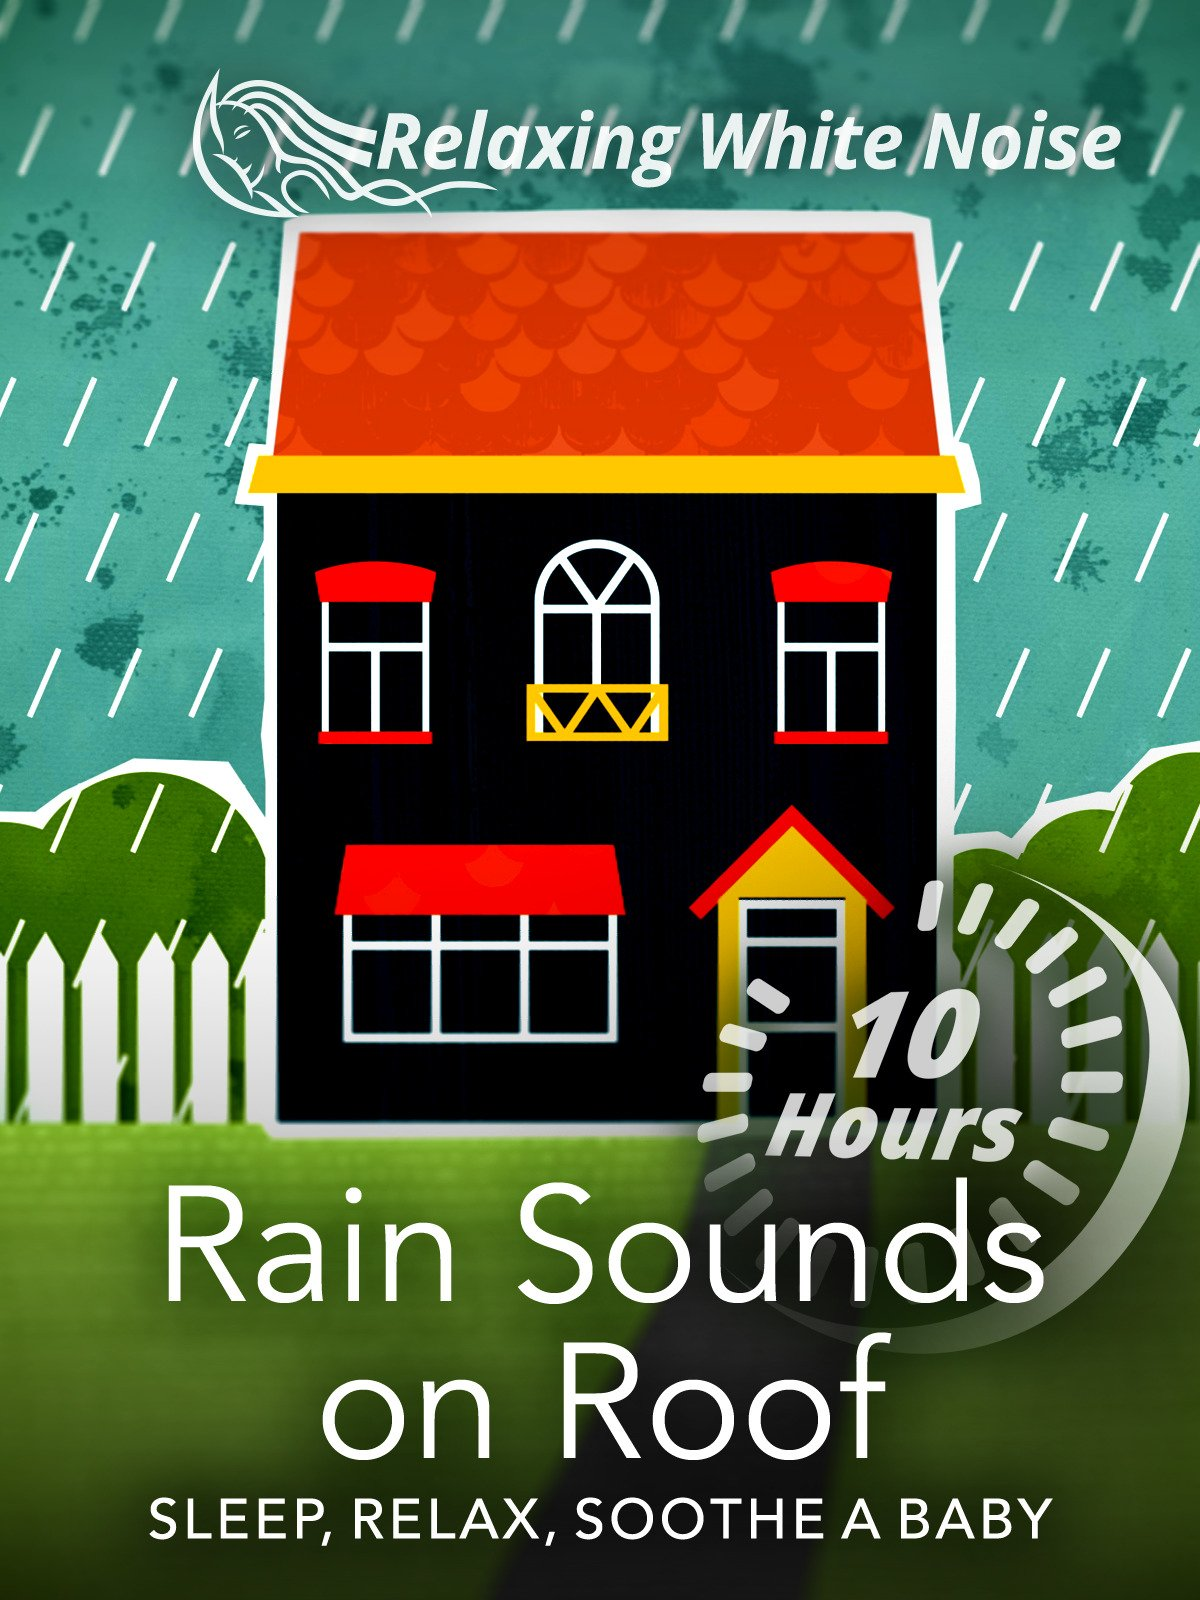 Rain Sounds on Roof 10 Hours